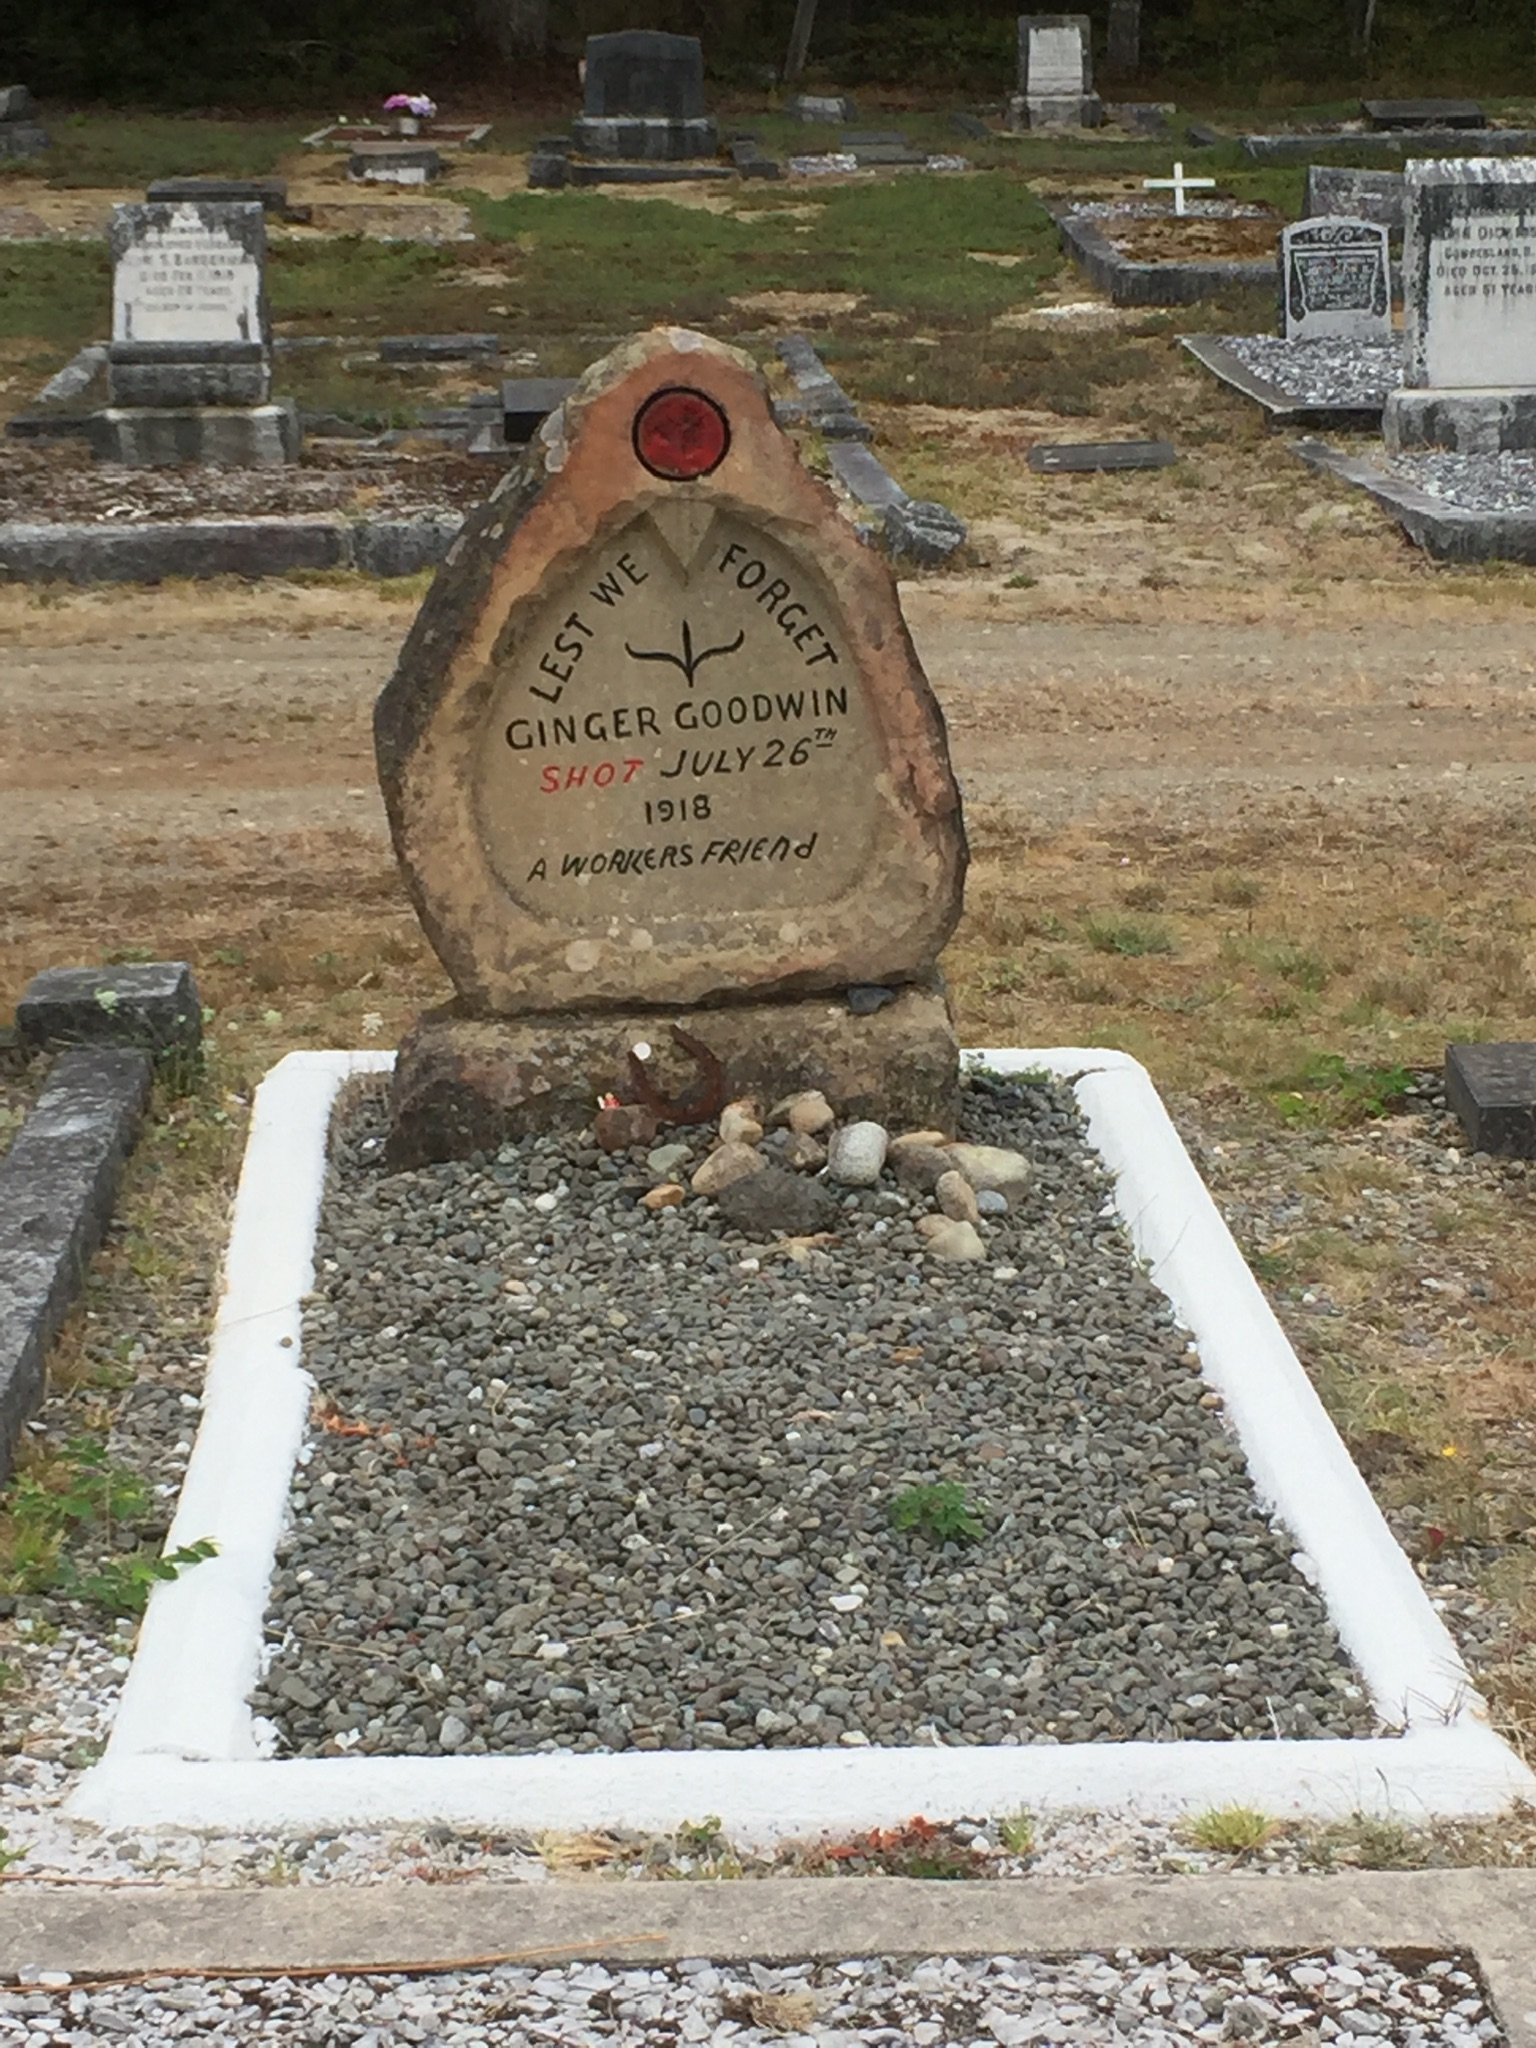 Ginger Goodwin's grave